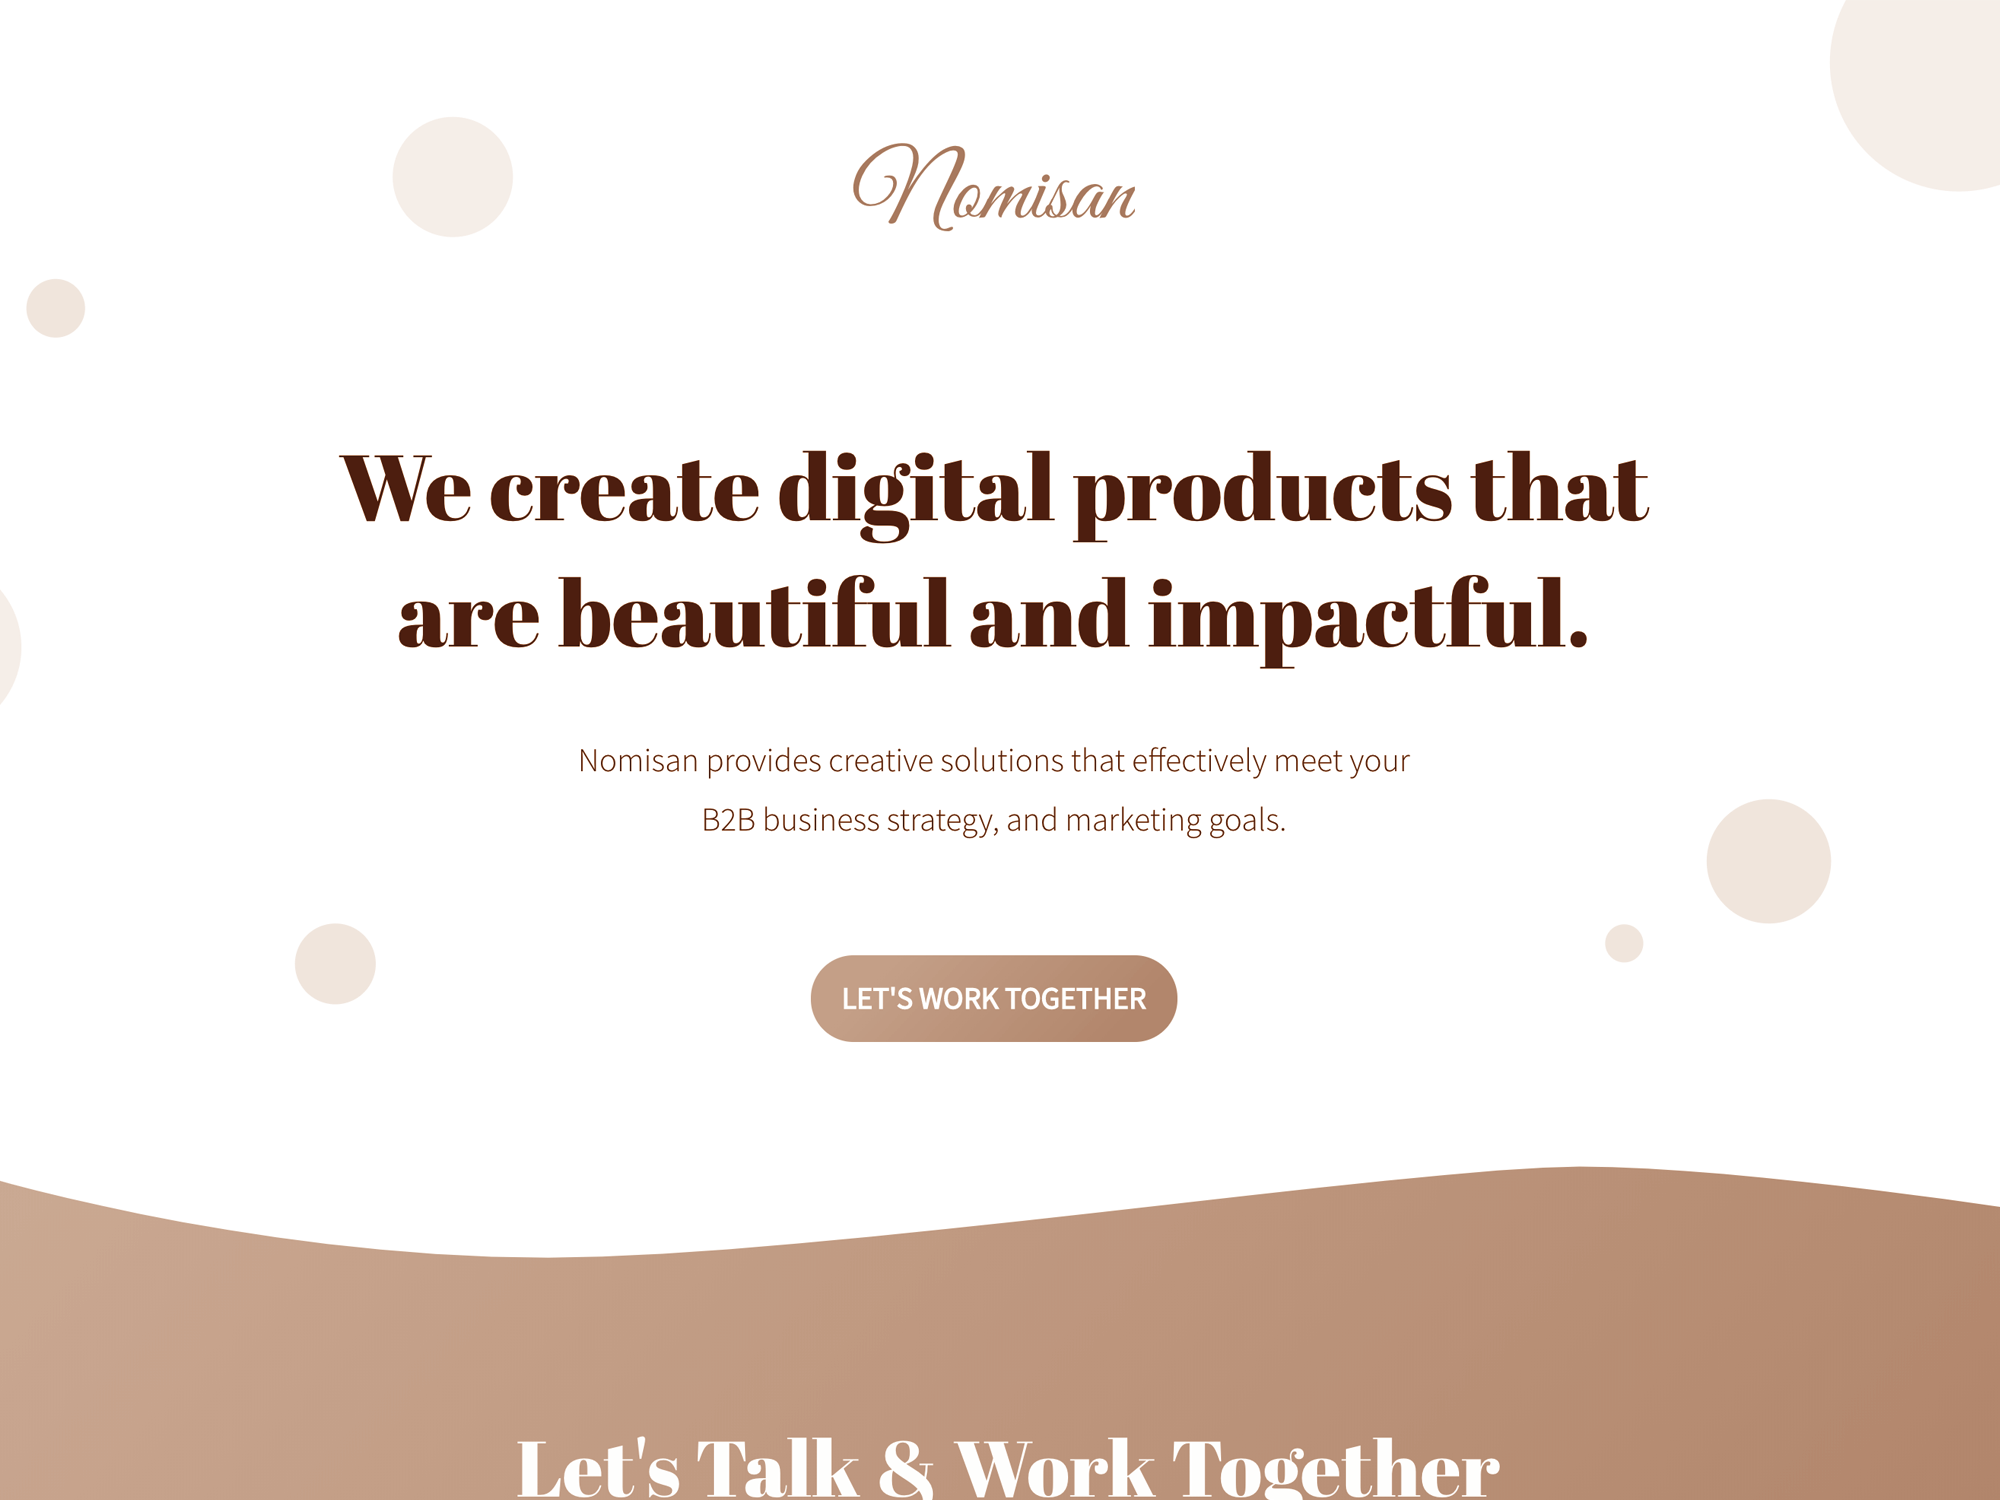 Preview case study for nomisan